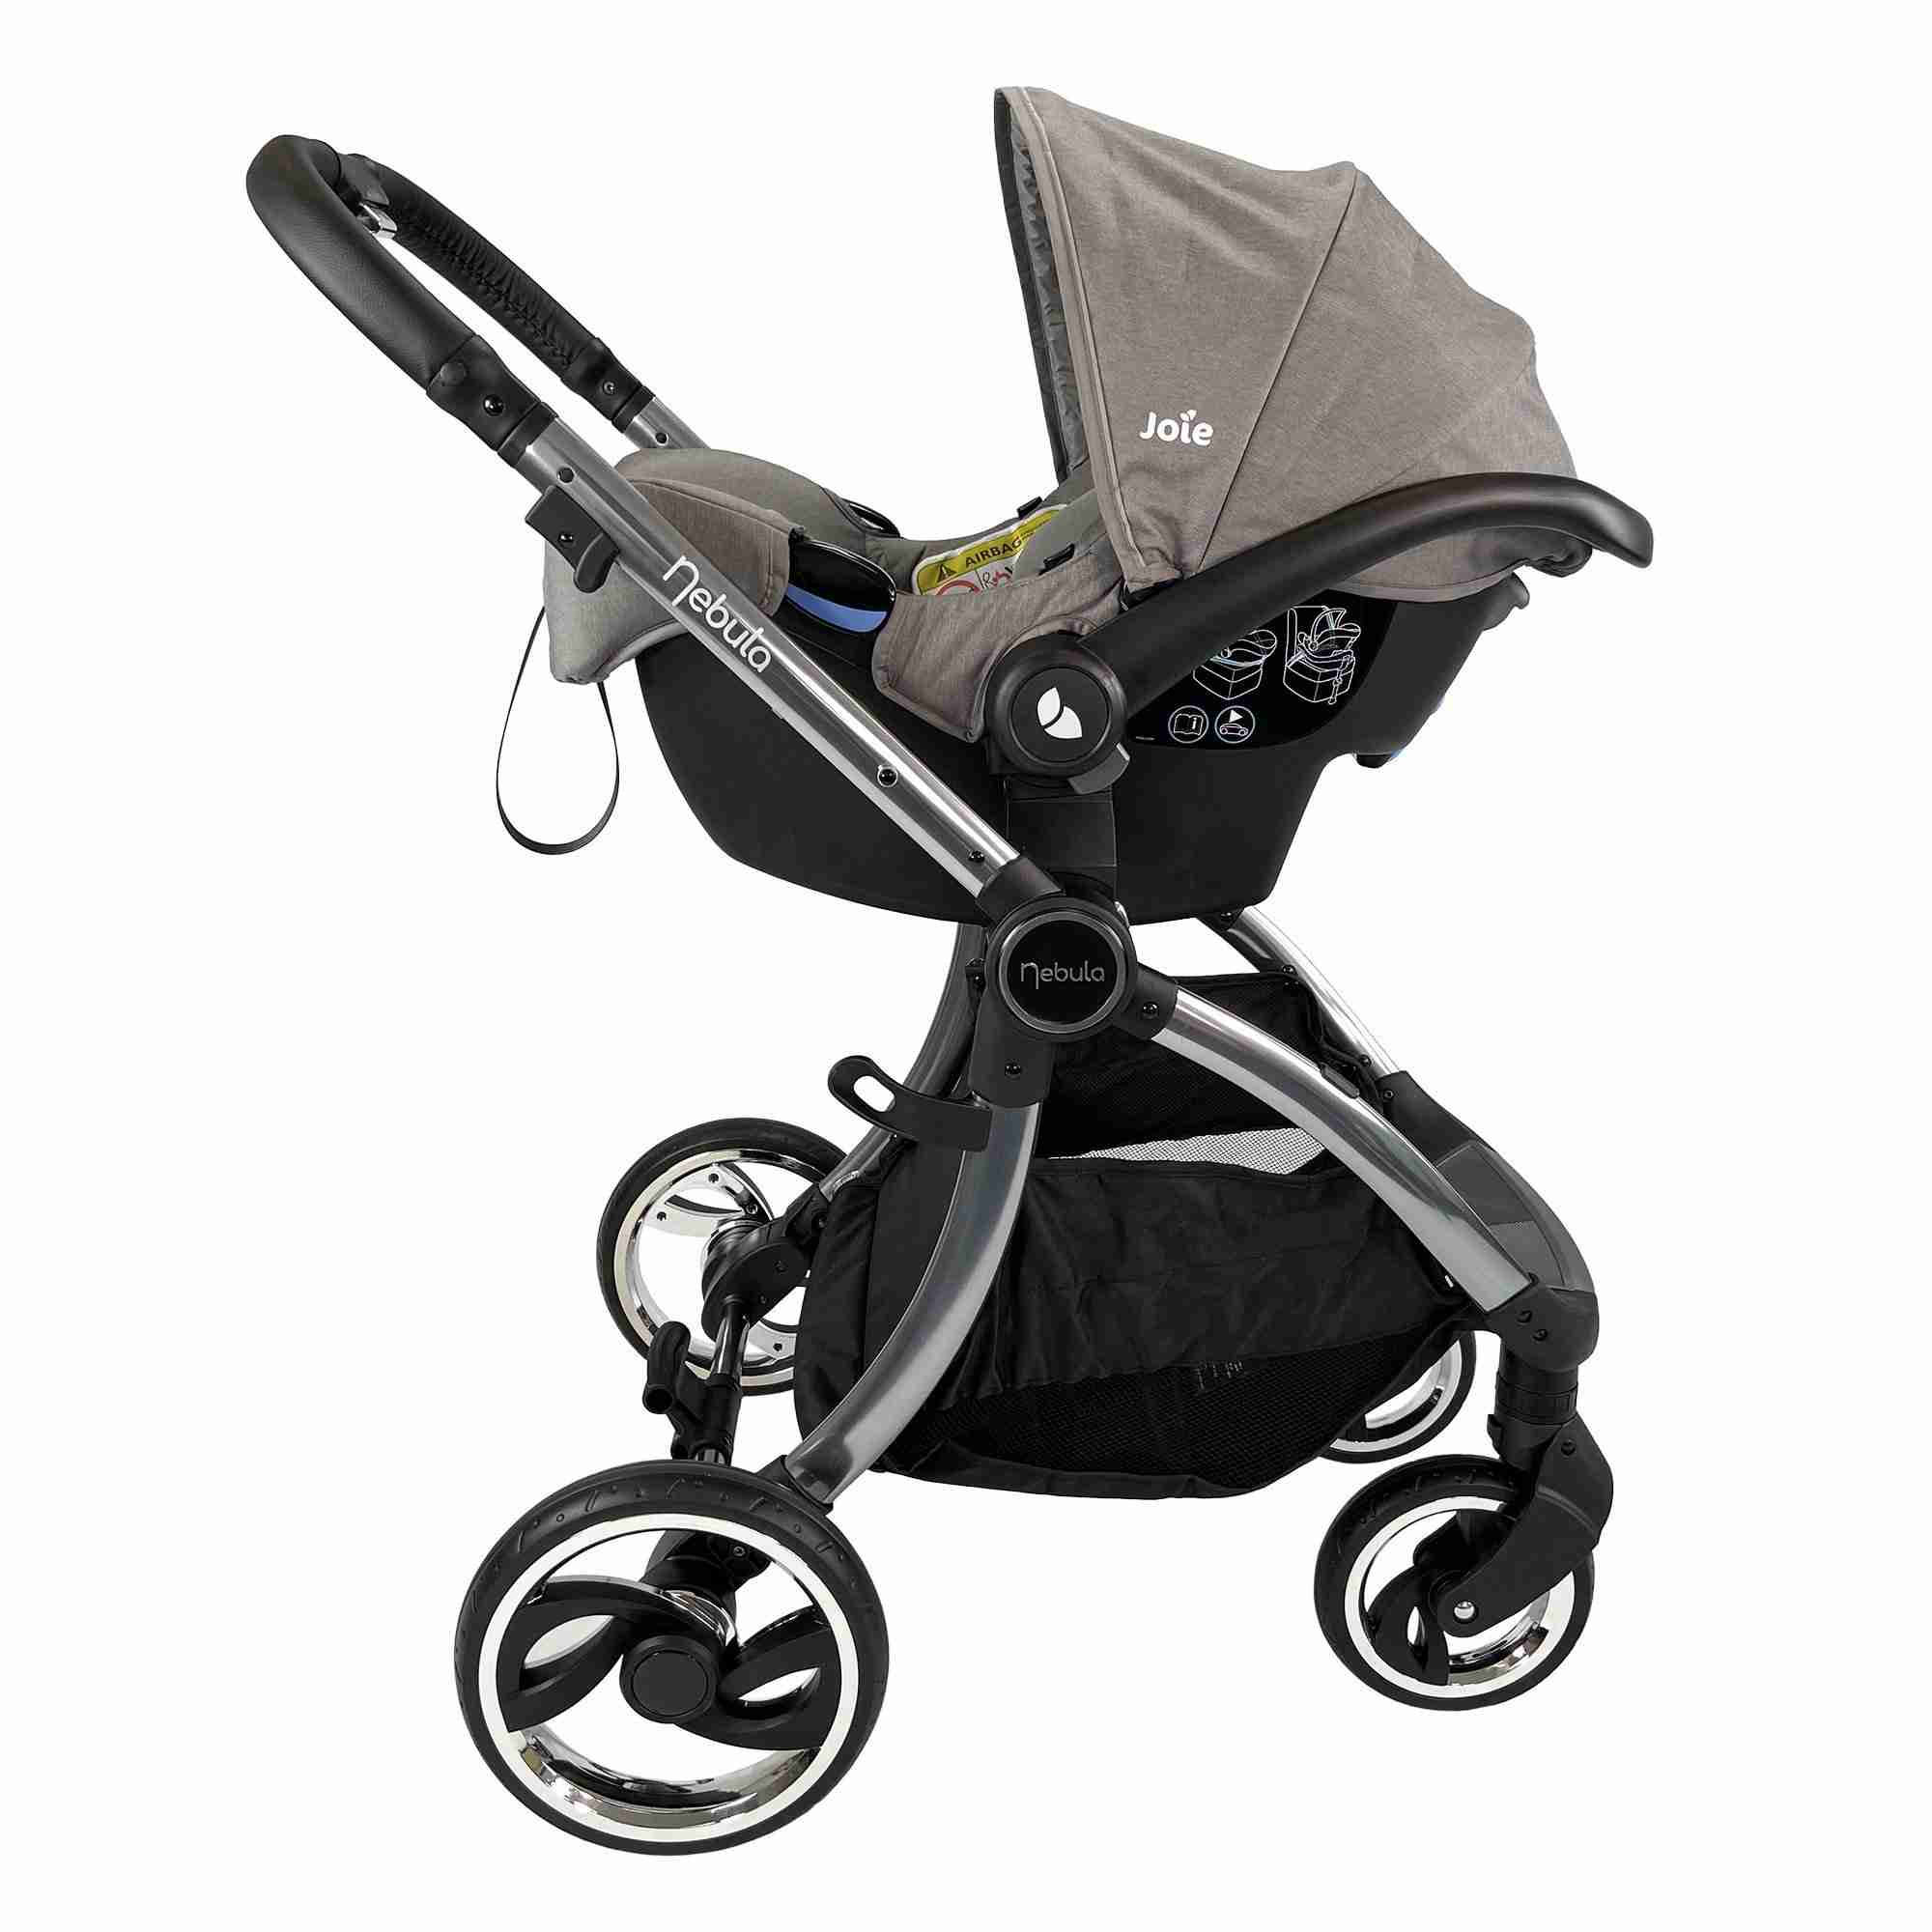 Venture Nebula Metro Grey baby stroller with car seat attached using car seat adapters